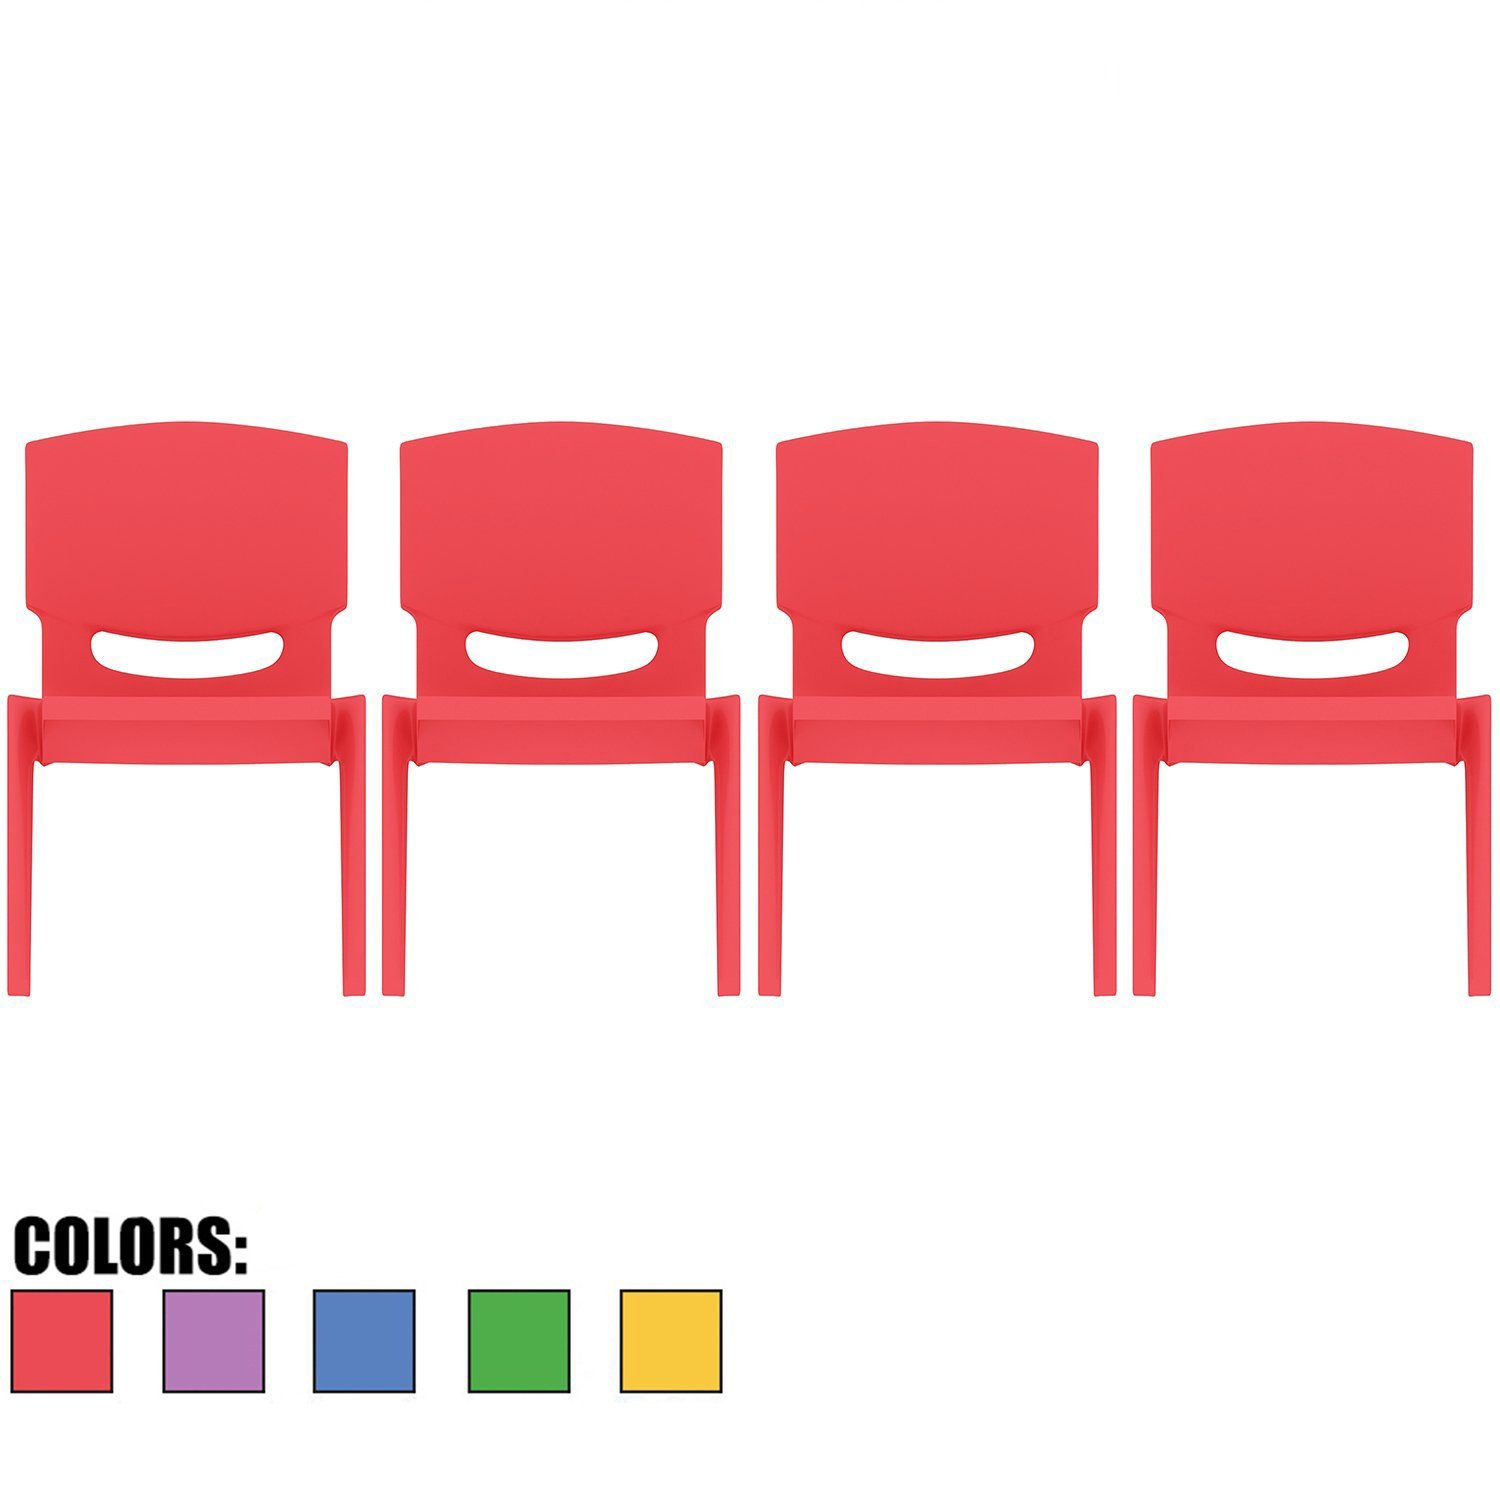 2xhome - Set of Four (4) - Red - Kids Size Plastic Side Chair 10'' Seat Height Red Childs Chair Childrens Room School Chairs No Arm Arms Armless Molded Plastic Seat Stackable